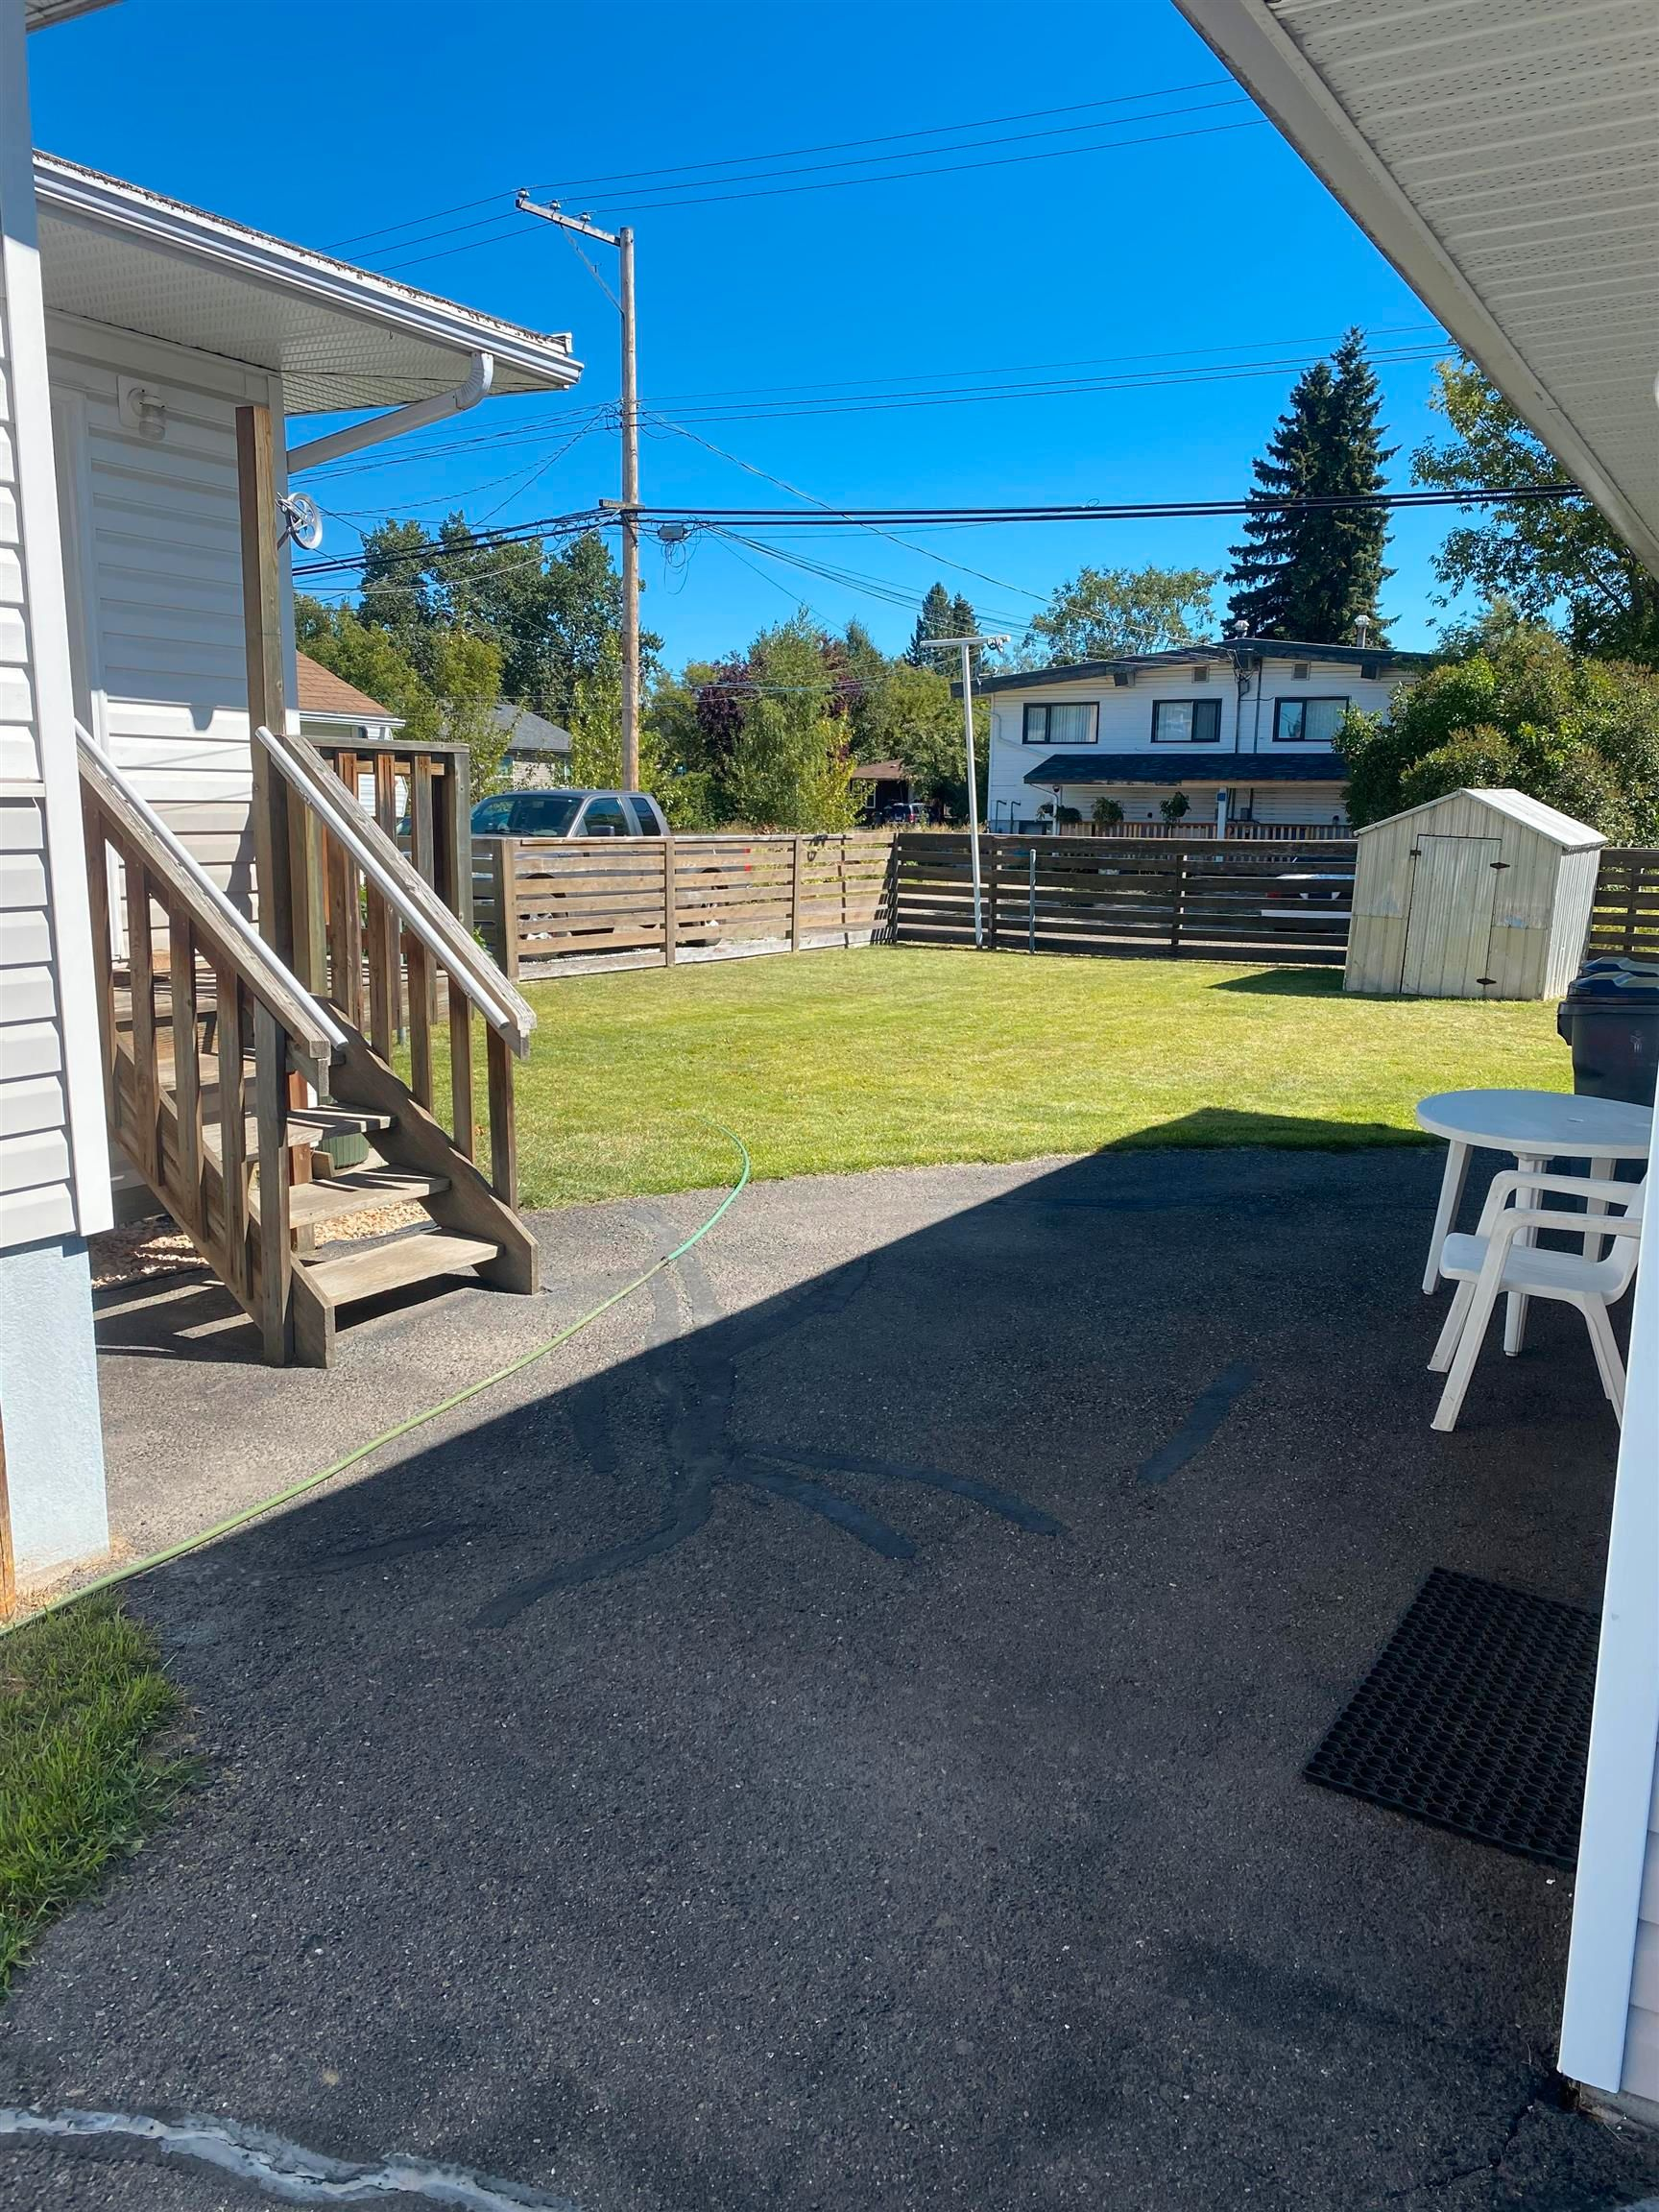 Photo 4: Photos: 346 - 352 CARNEY Street in Prince George: Central Duplex for sale (PG City Central (Zone 72))  : MLS®# R2609479